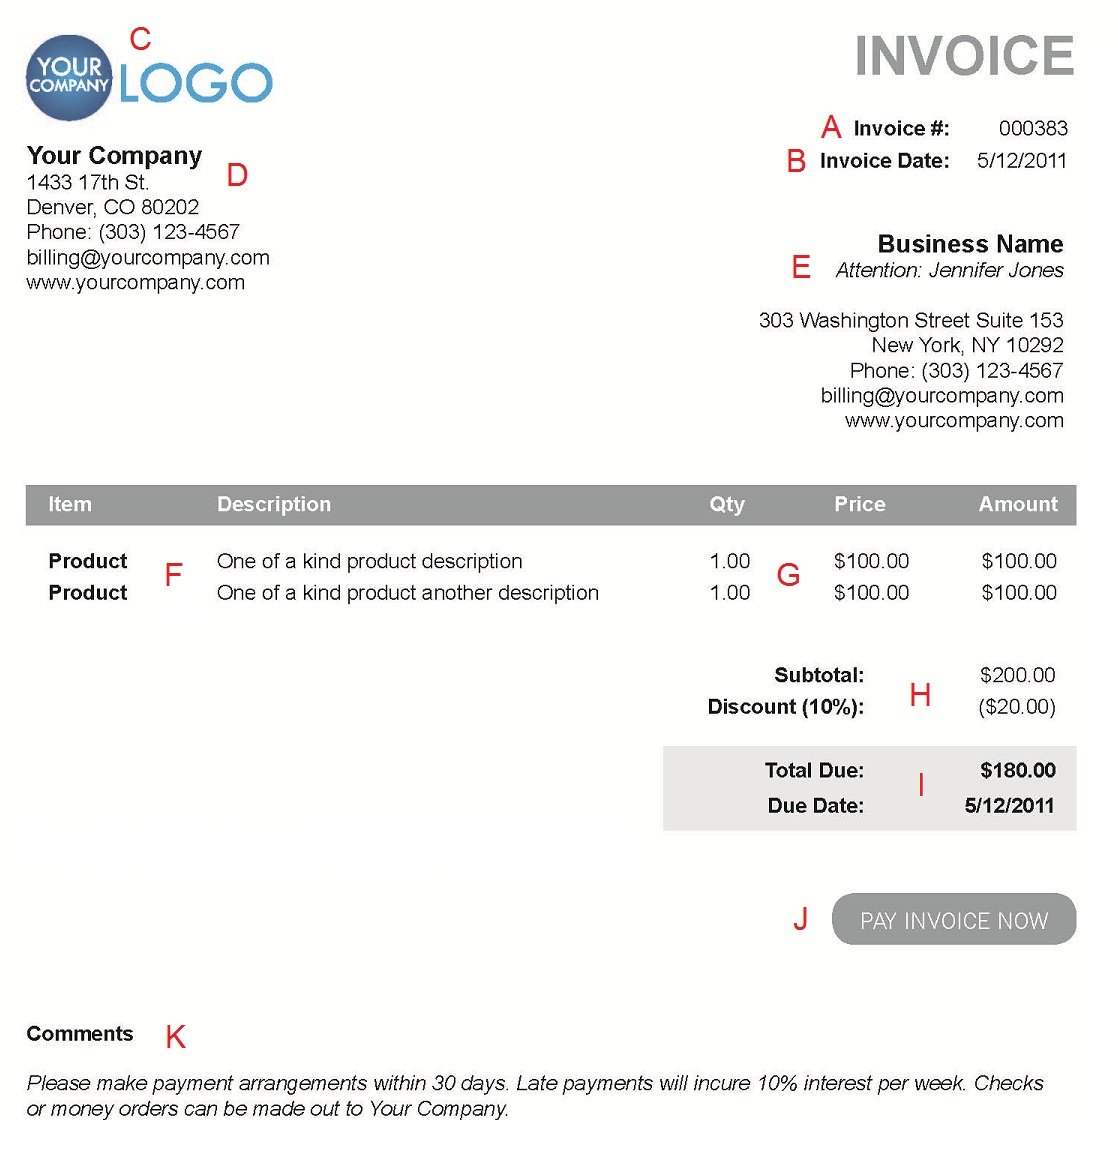 Occupyhistoryus  Marvelous The  Different Sections Of An Electronic Payment Invoice With Luxury A  With Amazing Trade Invoice Template Also Joomla Invoice In Addition Invoice Online Software And Best Free Invoice Software For Small Business As Well As Sme Invoice Finance Ltd Additionally Quotation And Invoice From Paysimplecom With Occupyhistoryus  Luxury The  Different Sections Of An Electronic Payment Invoice With Amazing A  And Marvelous Trade Invoice Template Also Joomla Invoice In Addition Invoice Online Software From Paysimplecom